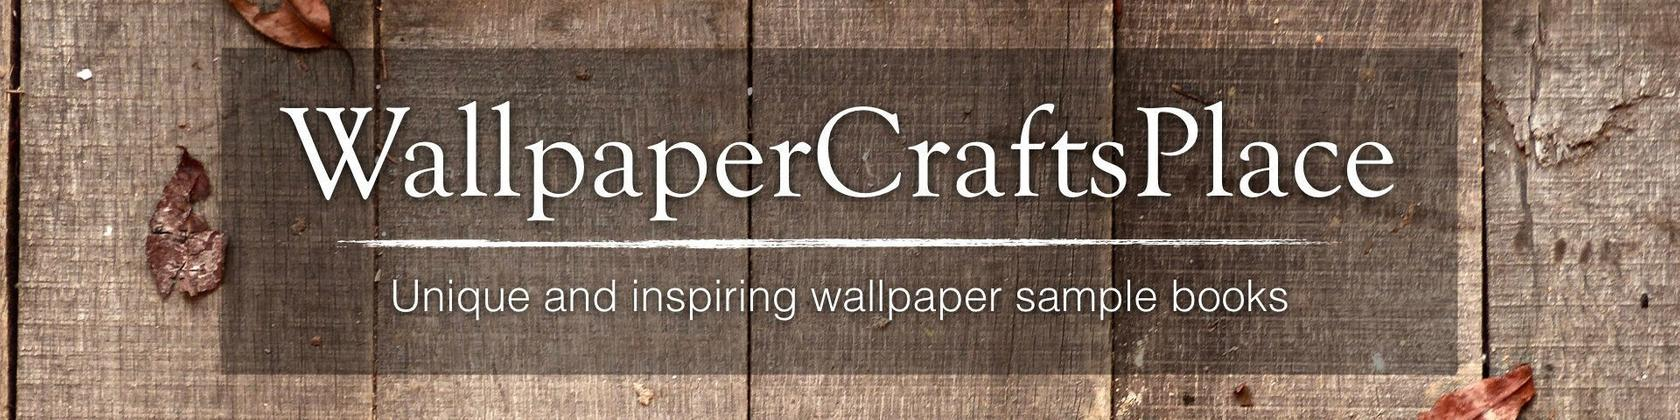 Wallpaper Crafts Place